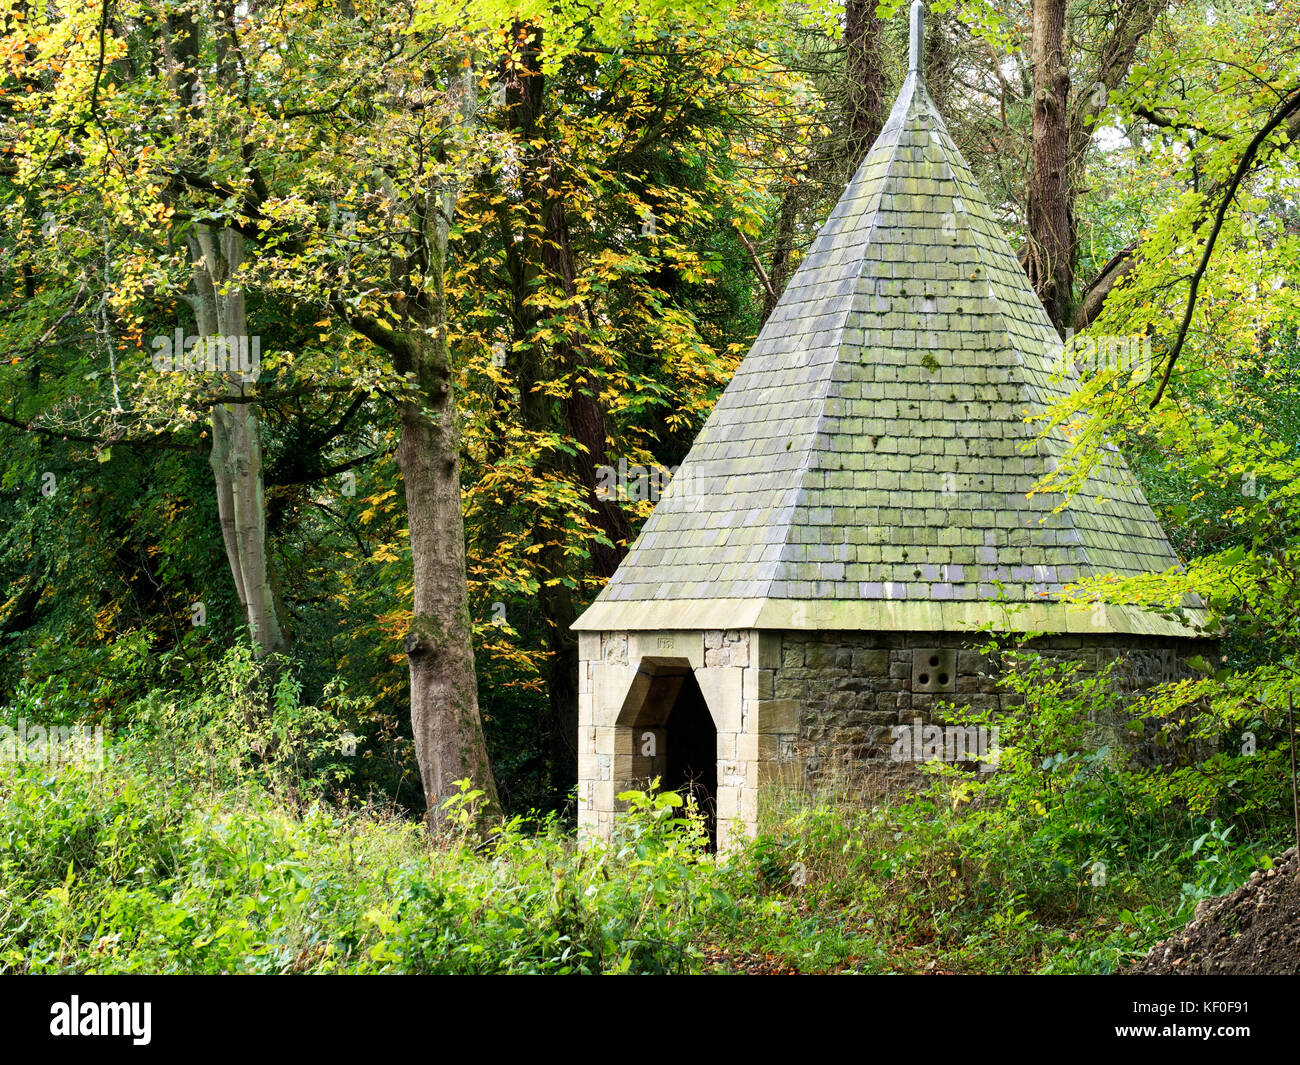 Summerhouse at Castlestead built 1860 by George Metcalfe owner of Glasshouses Mill Pateley Bridge Yorkshire England - Stock Image